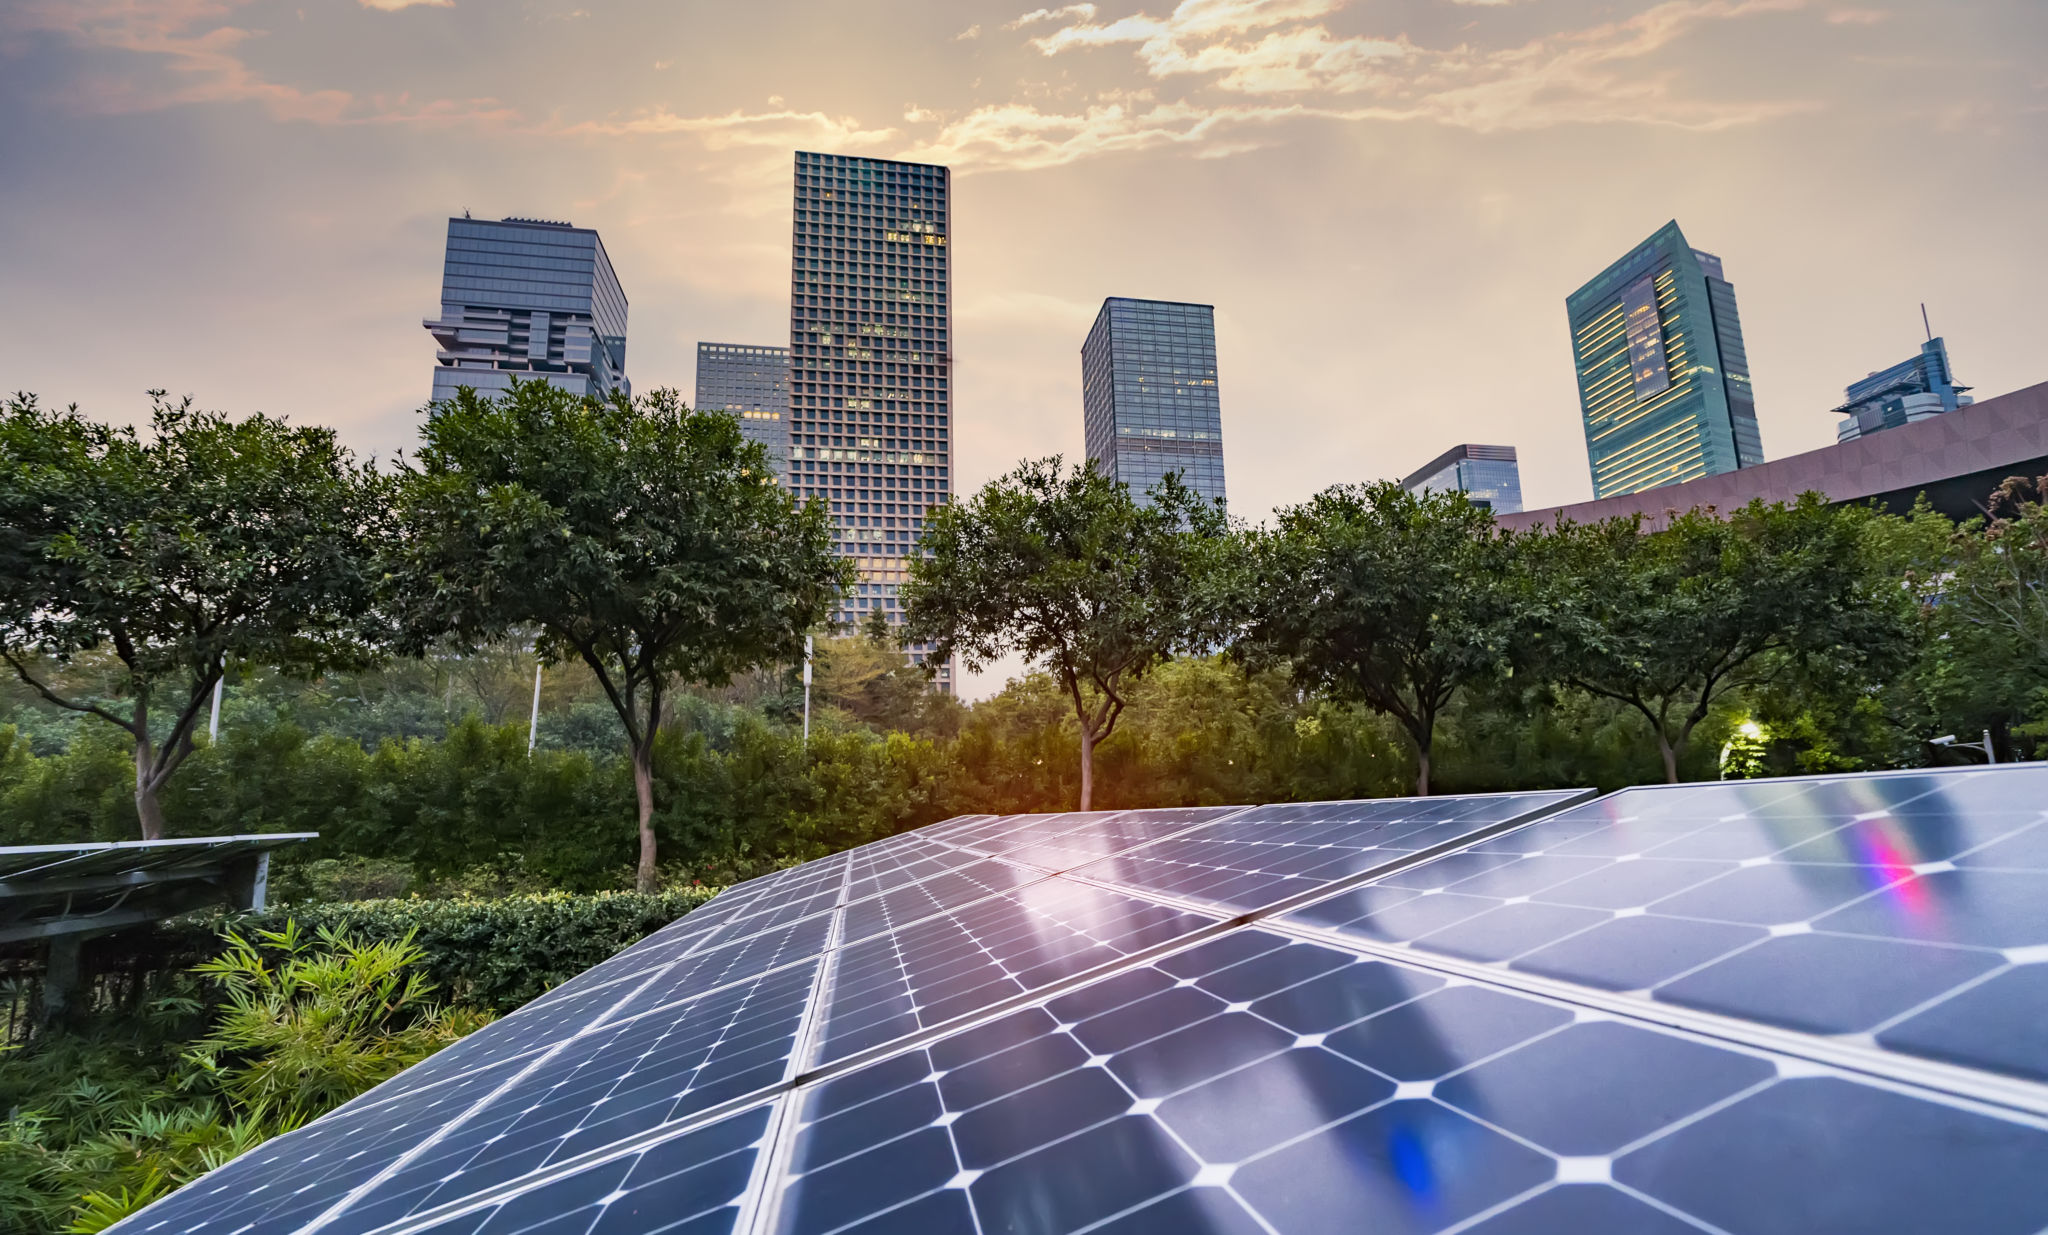 Cityscape with trees and solar panel -Nationally Determined Contribution or NDC